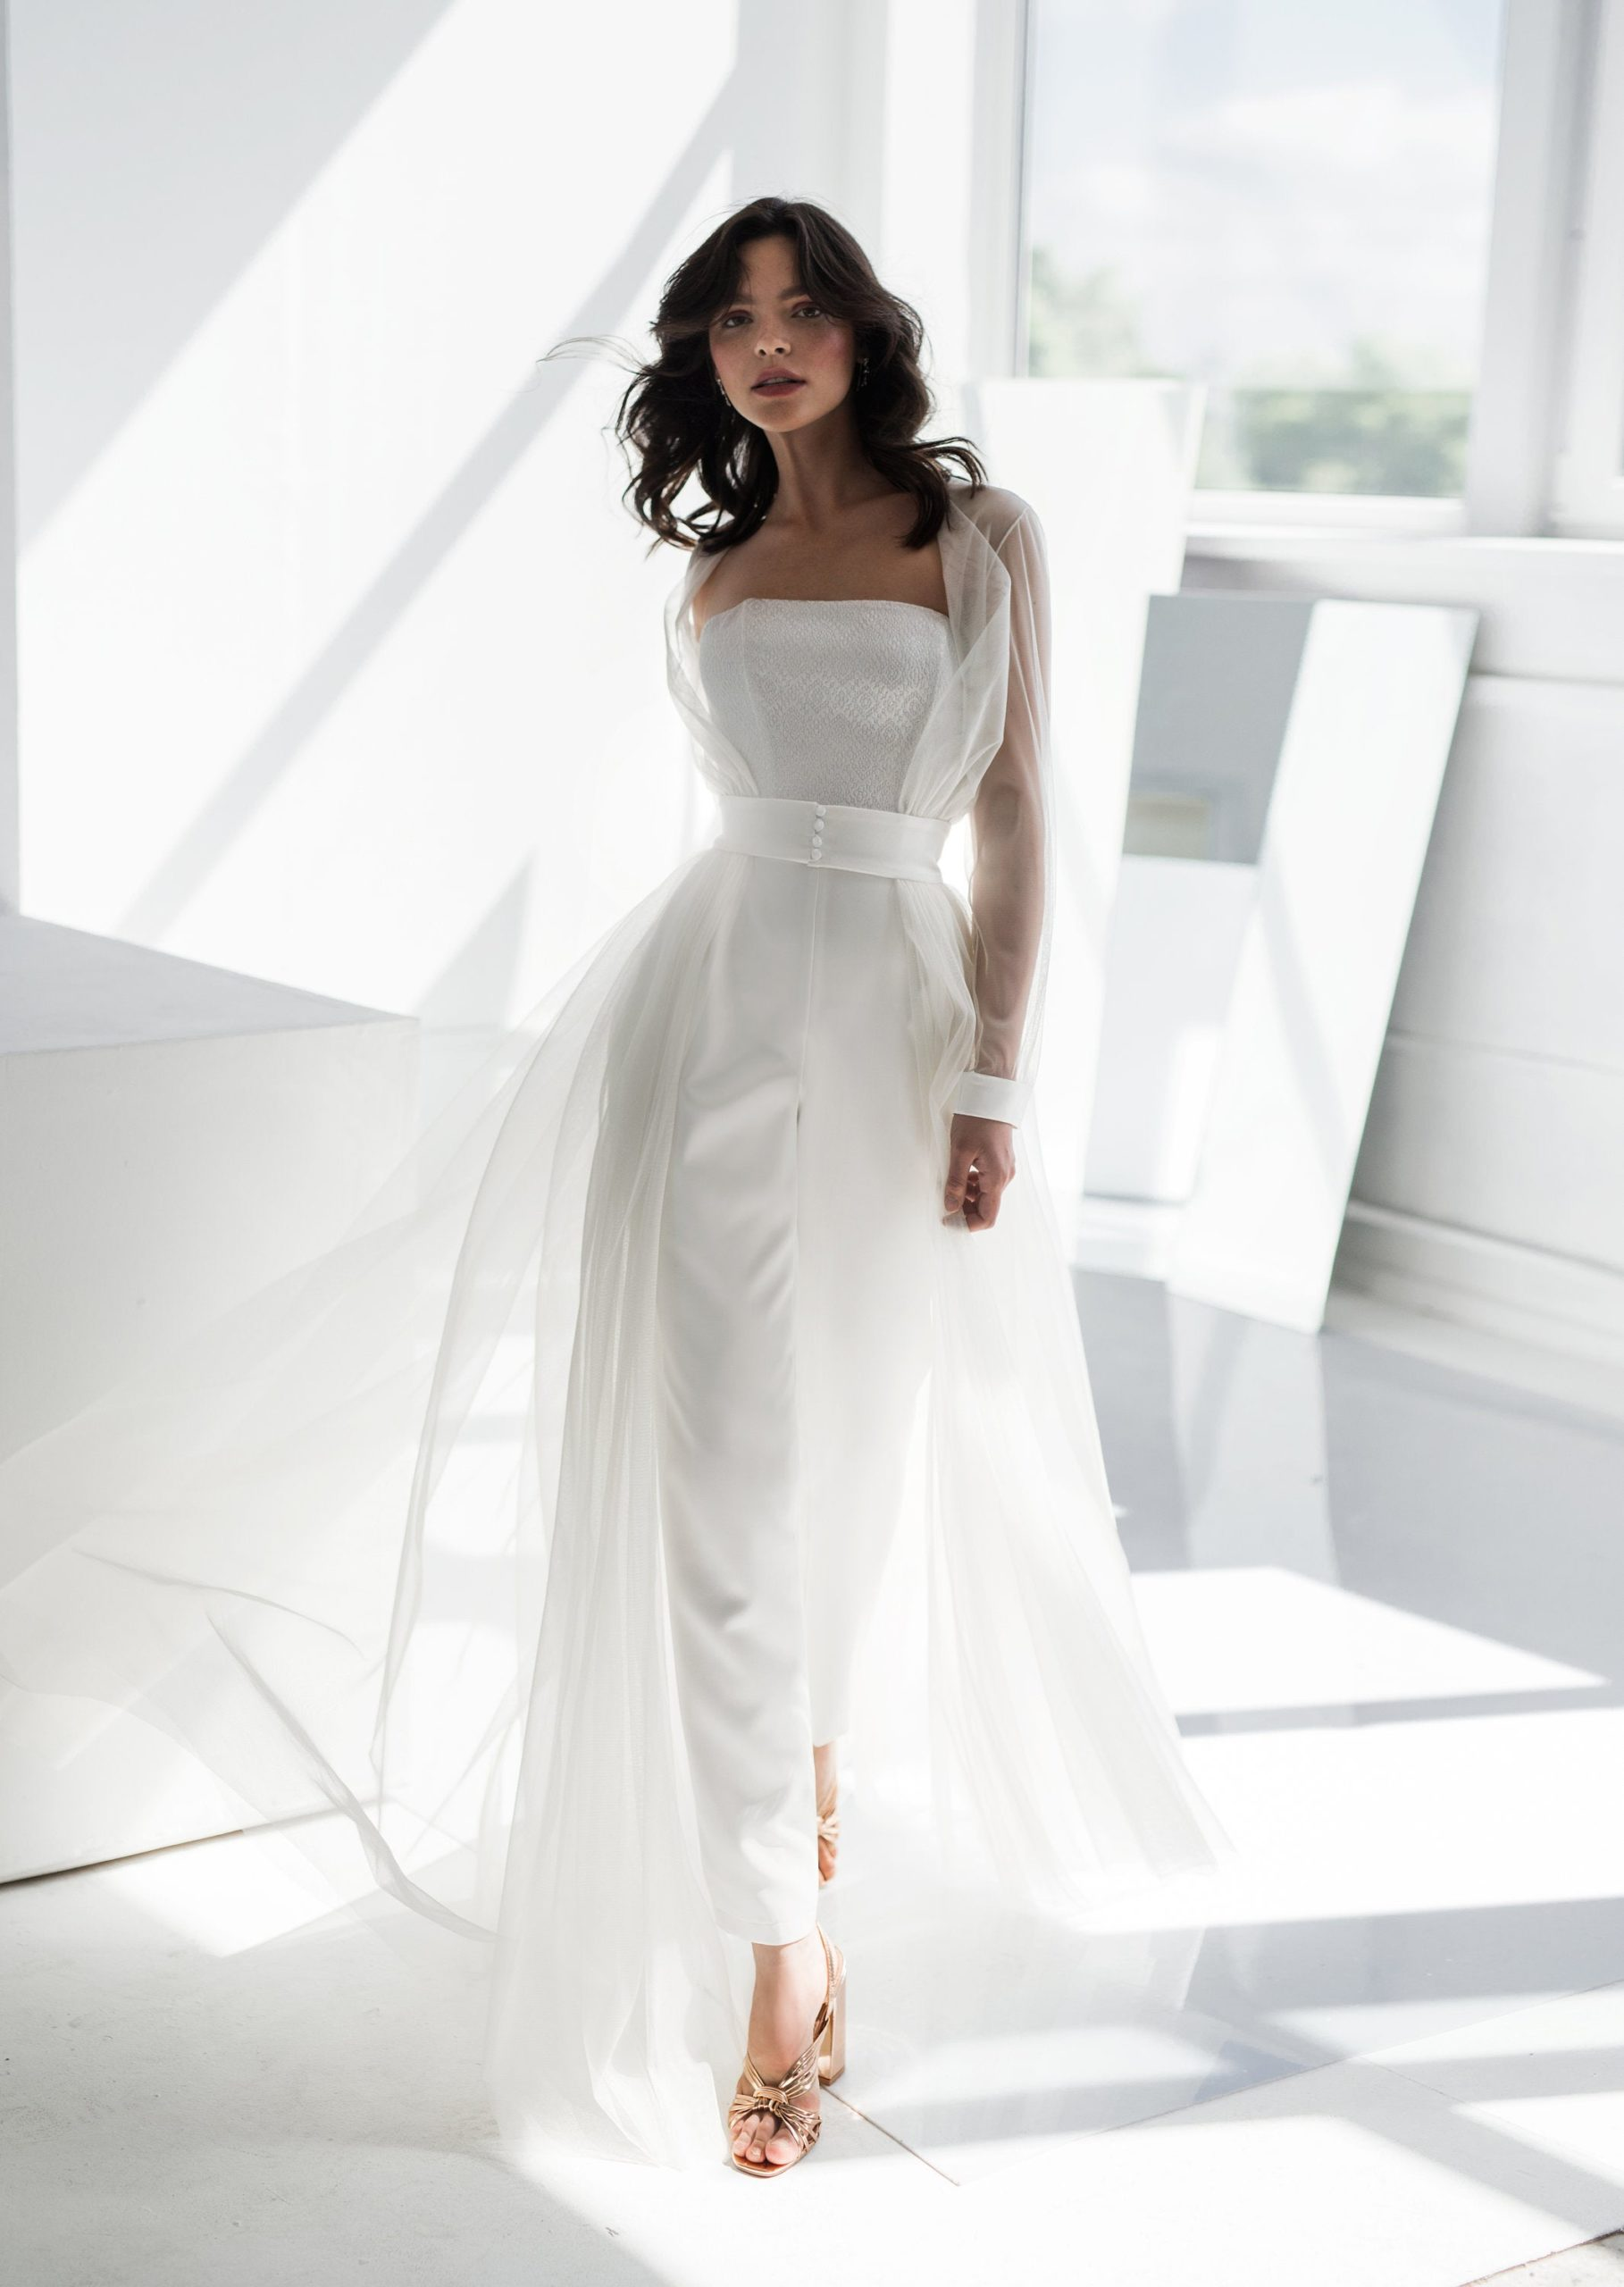 A woman wears a flowy wedding jumpsuit.